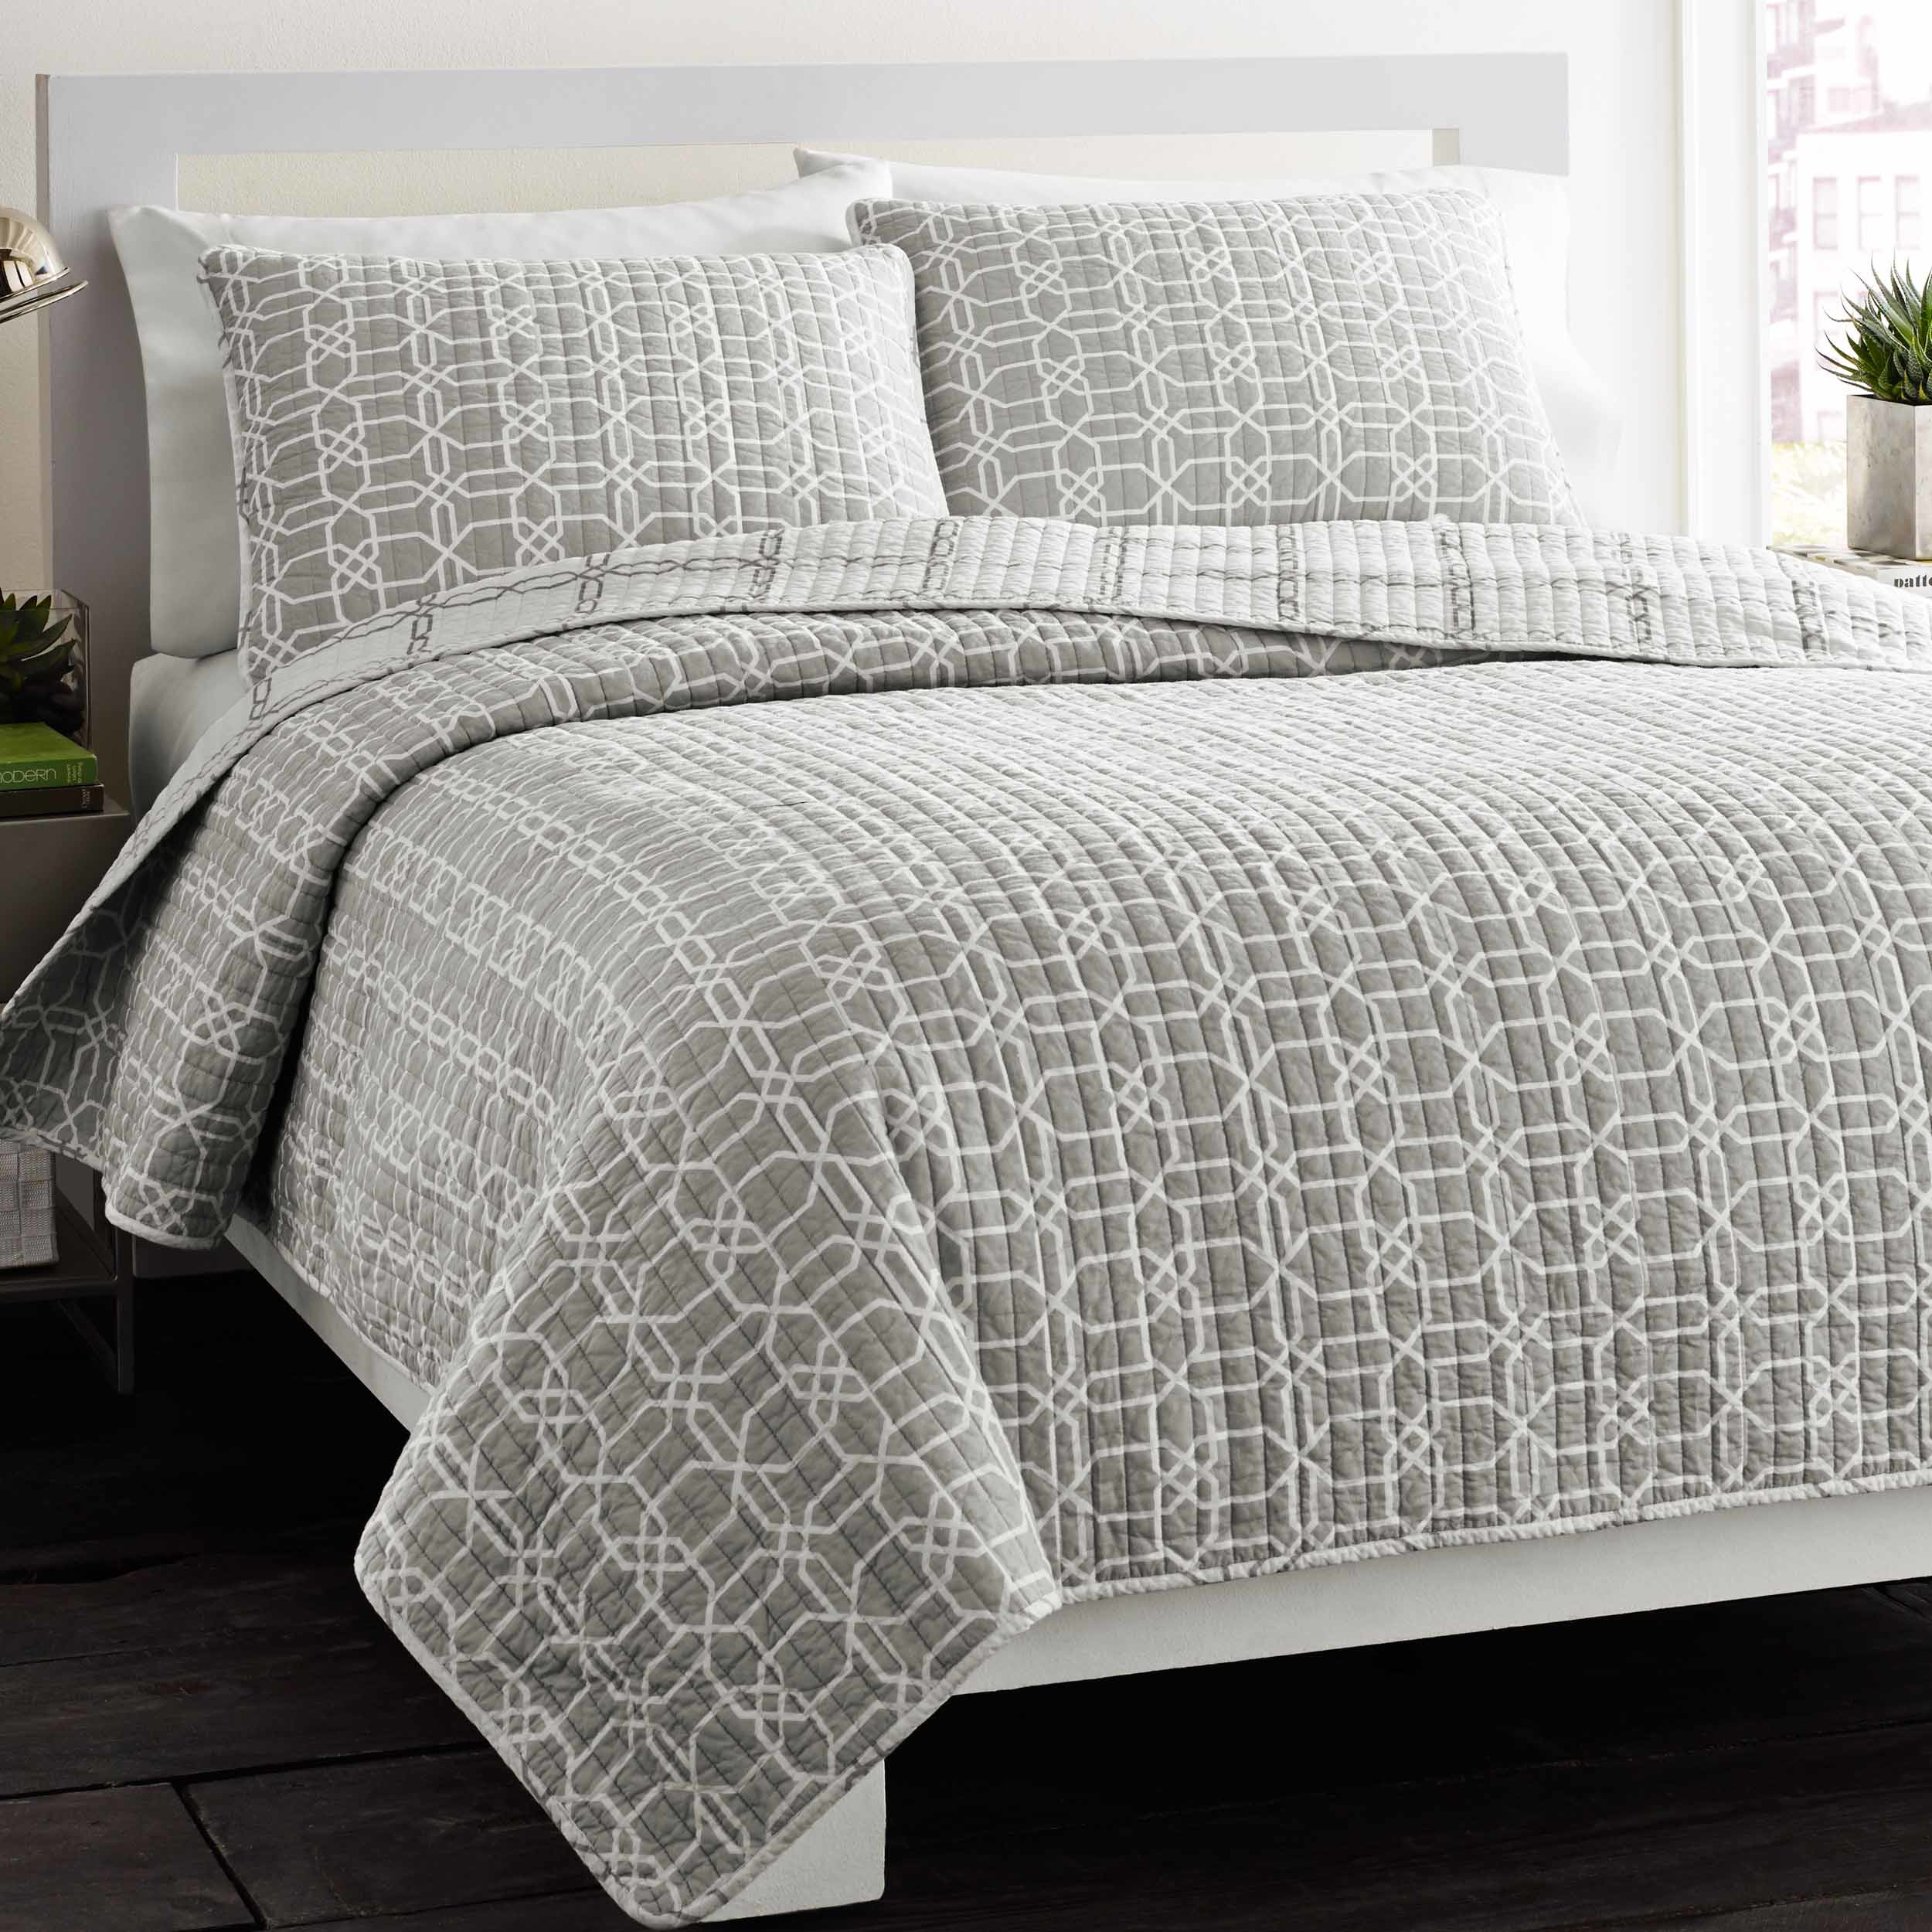 Amazing Cheap Bed Comforters | Sears Comforter Sets | Comforter Sets Sears